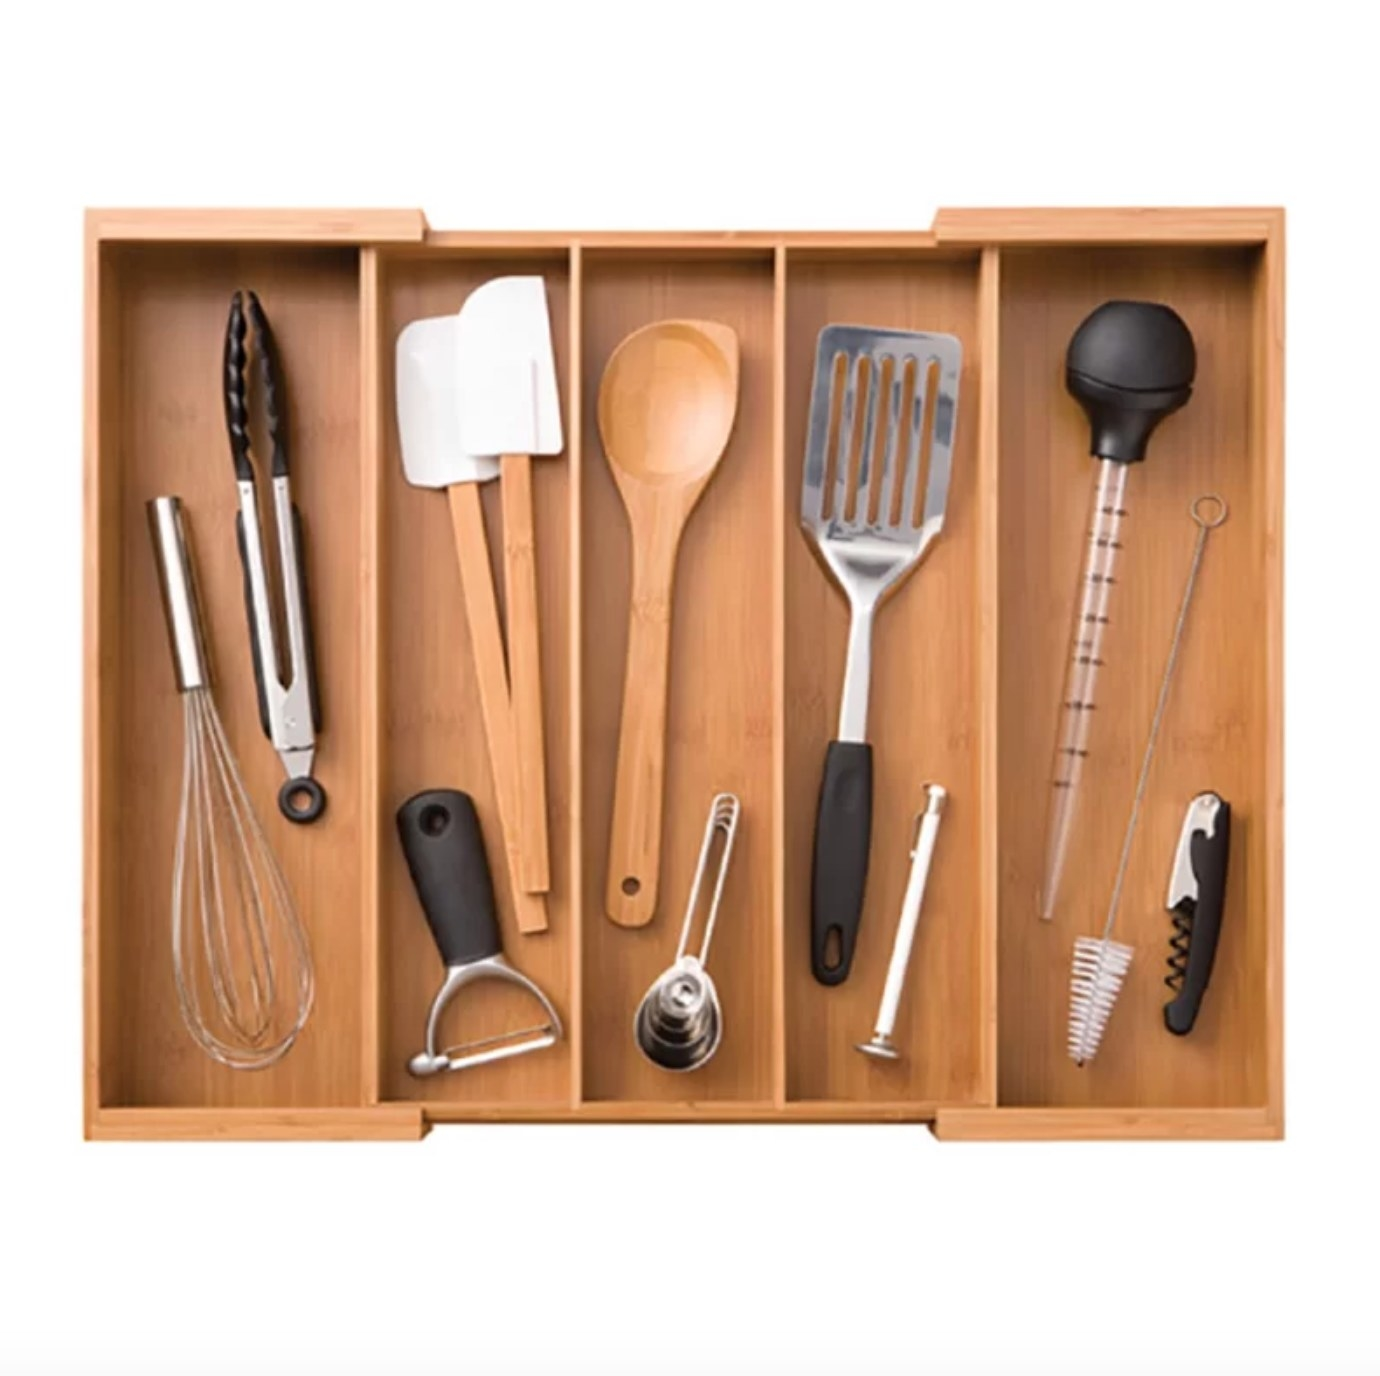 The drawer organizer